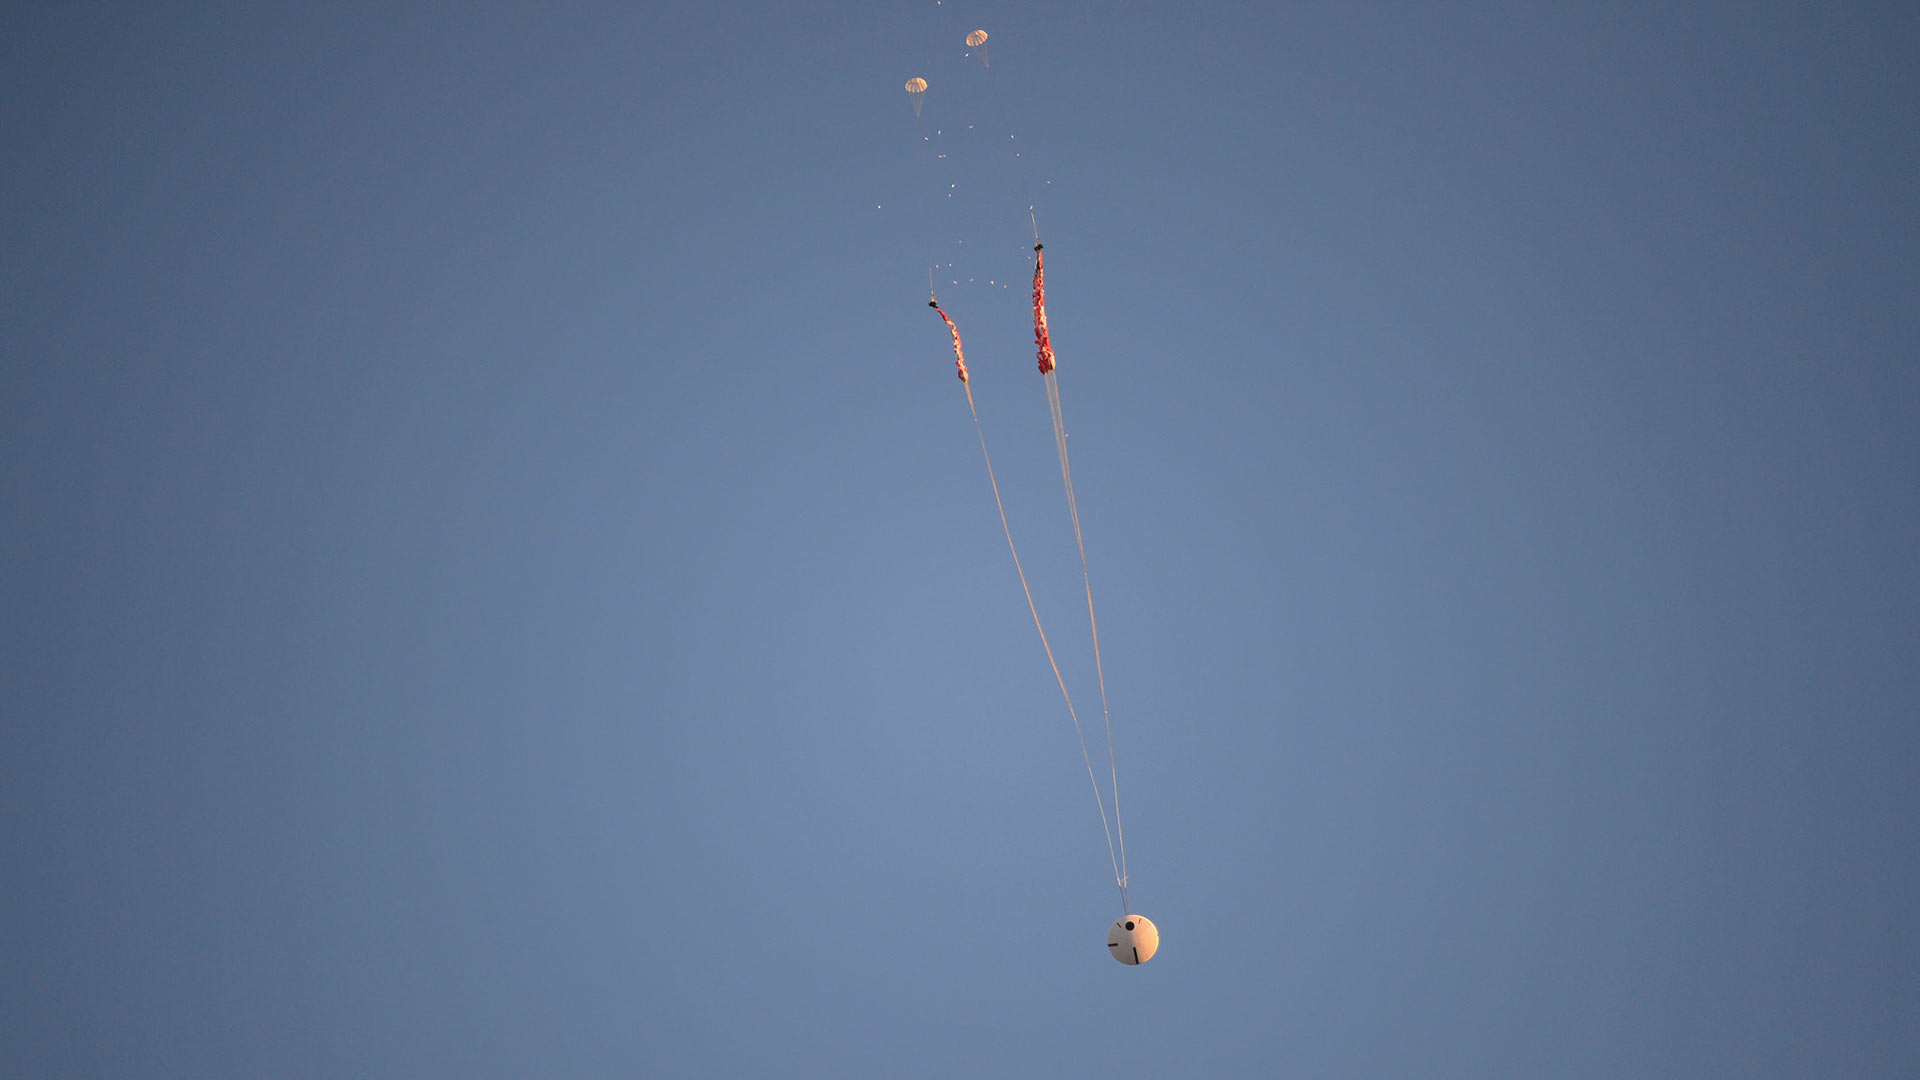 Orion parachute test hero